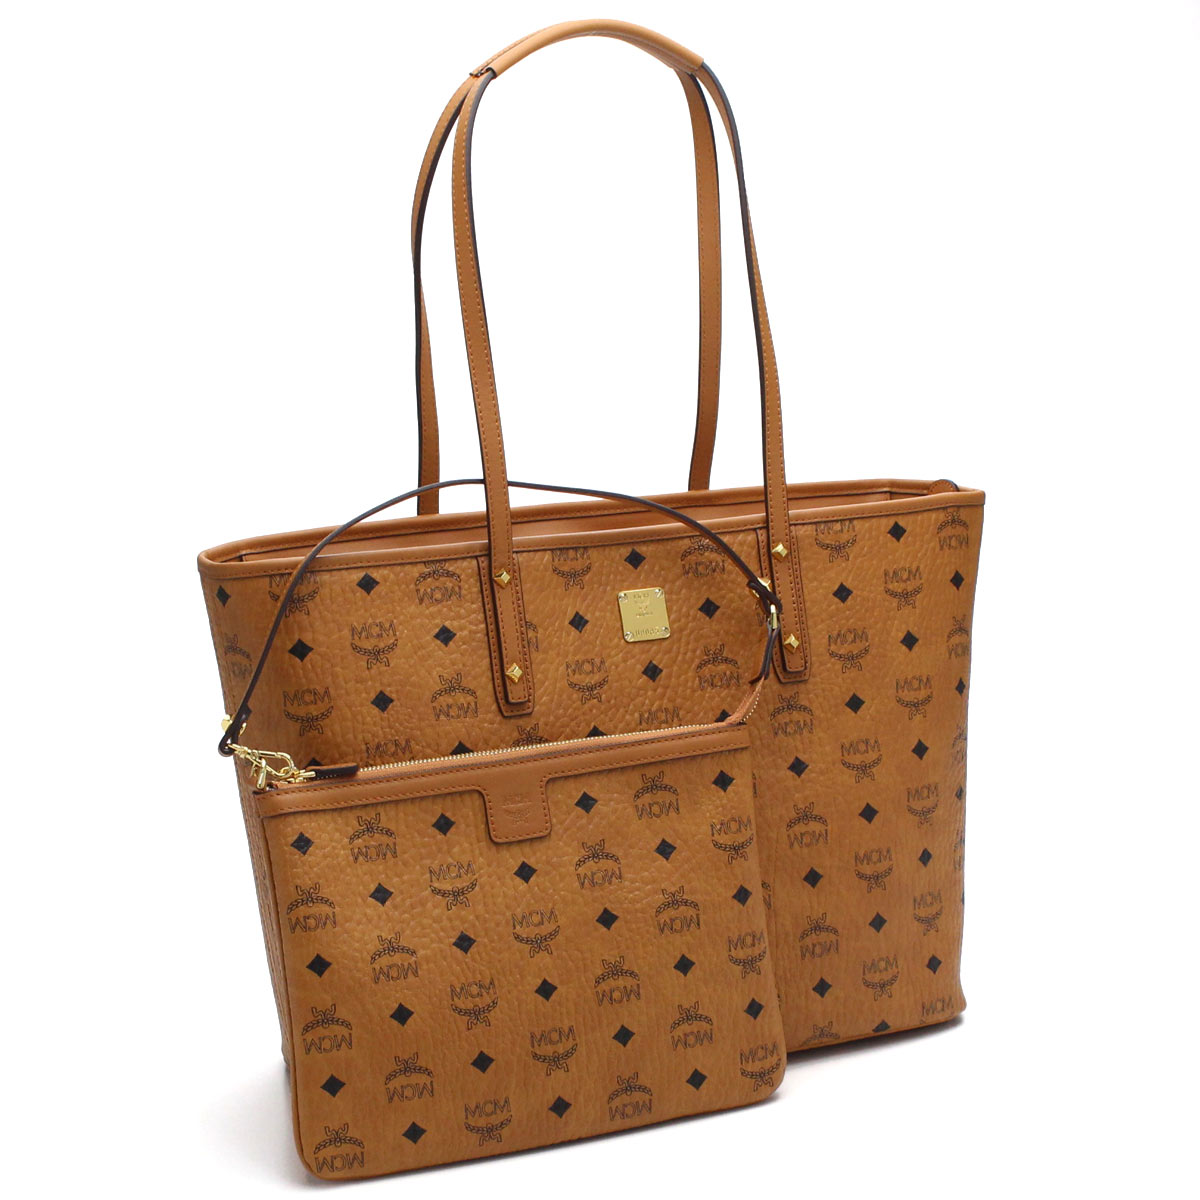 Hit The Total Brand Whole M Cm Mcm Anya Per Tote Bag Mwp7svi33 Co001 Brown System Rakuten Global Market